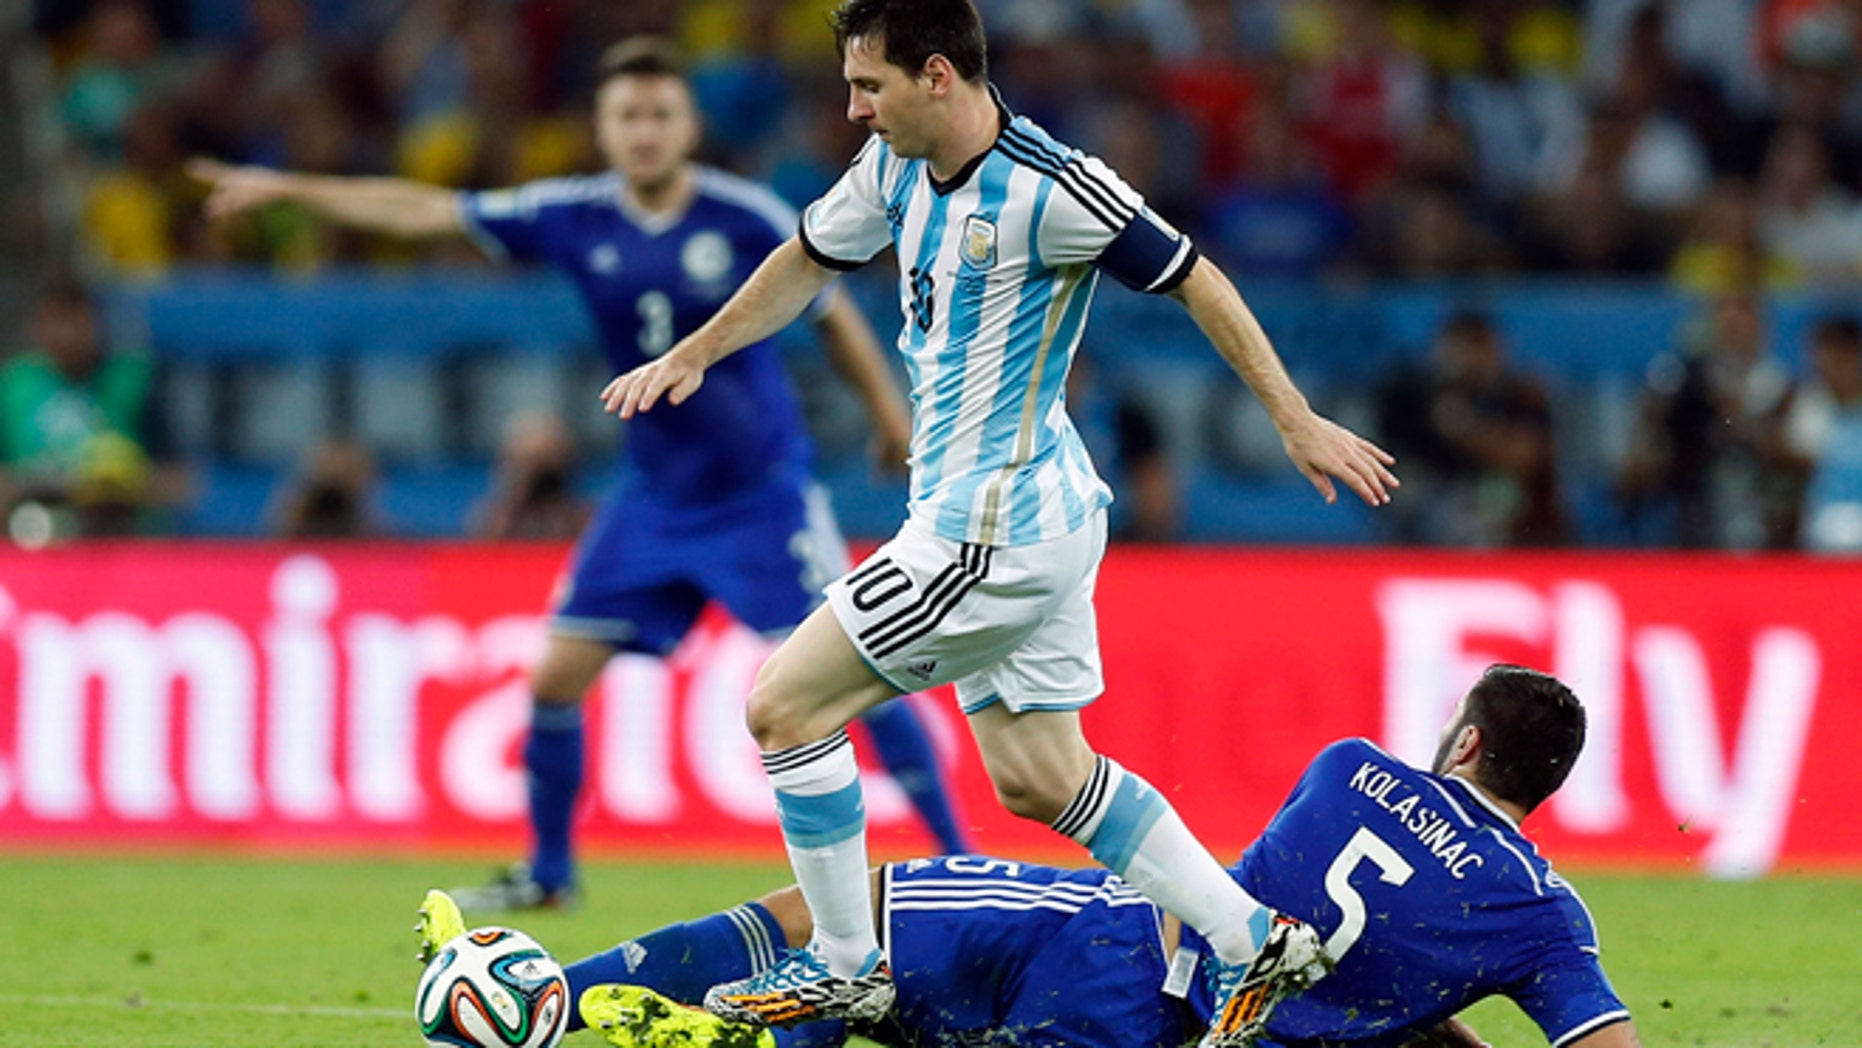 June 15, 2014: Argentina's Lionel Messi strolls past Bosnia's Sead Kolasinac during the group F World Cup soccer match between Argentina and Bosnia at the Maracana Stadium in Rio de Janeiro, Brazil.